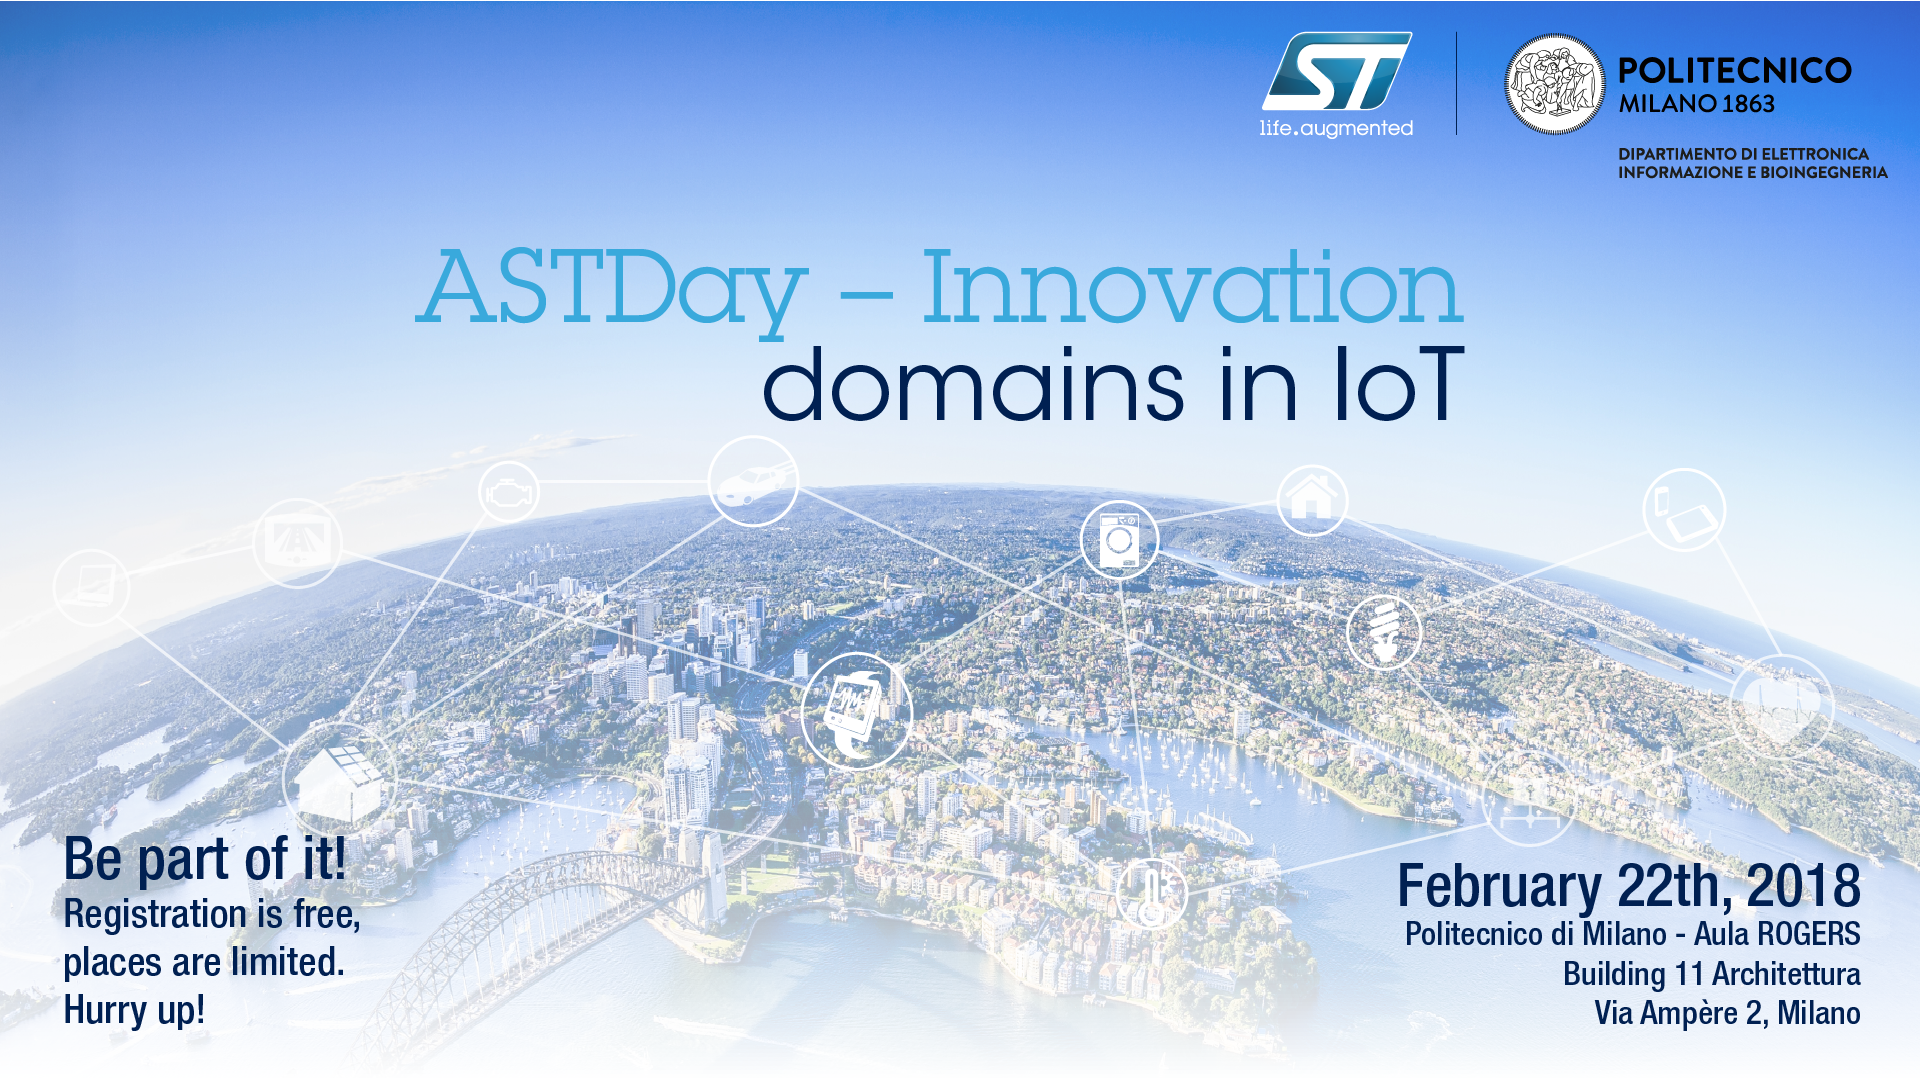 ASTDay: Innovation Domains in IoT